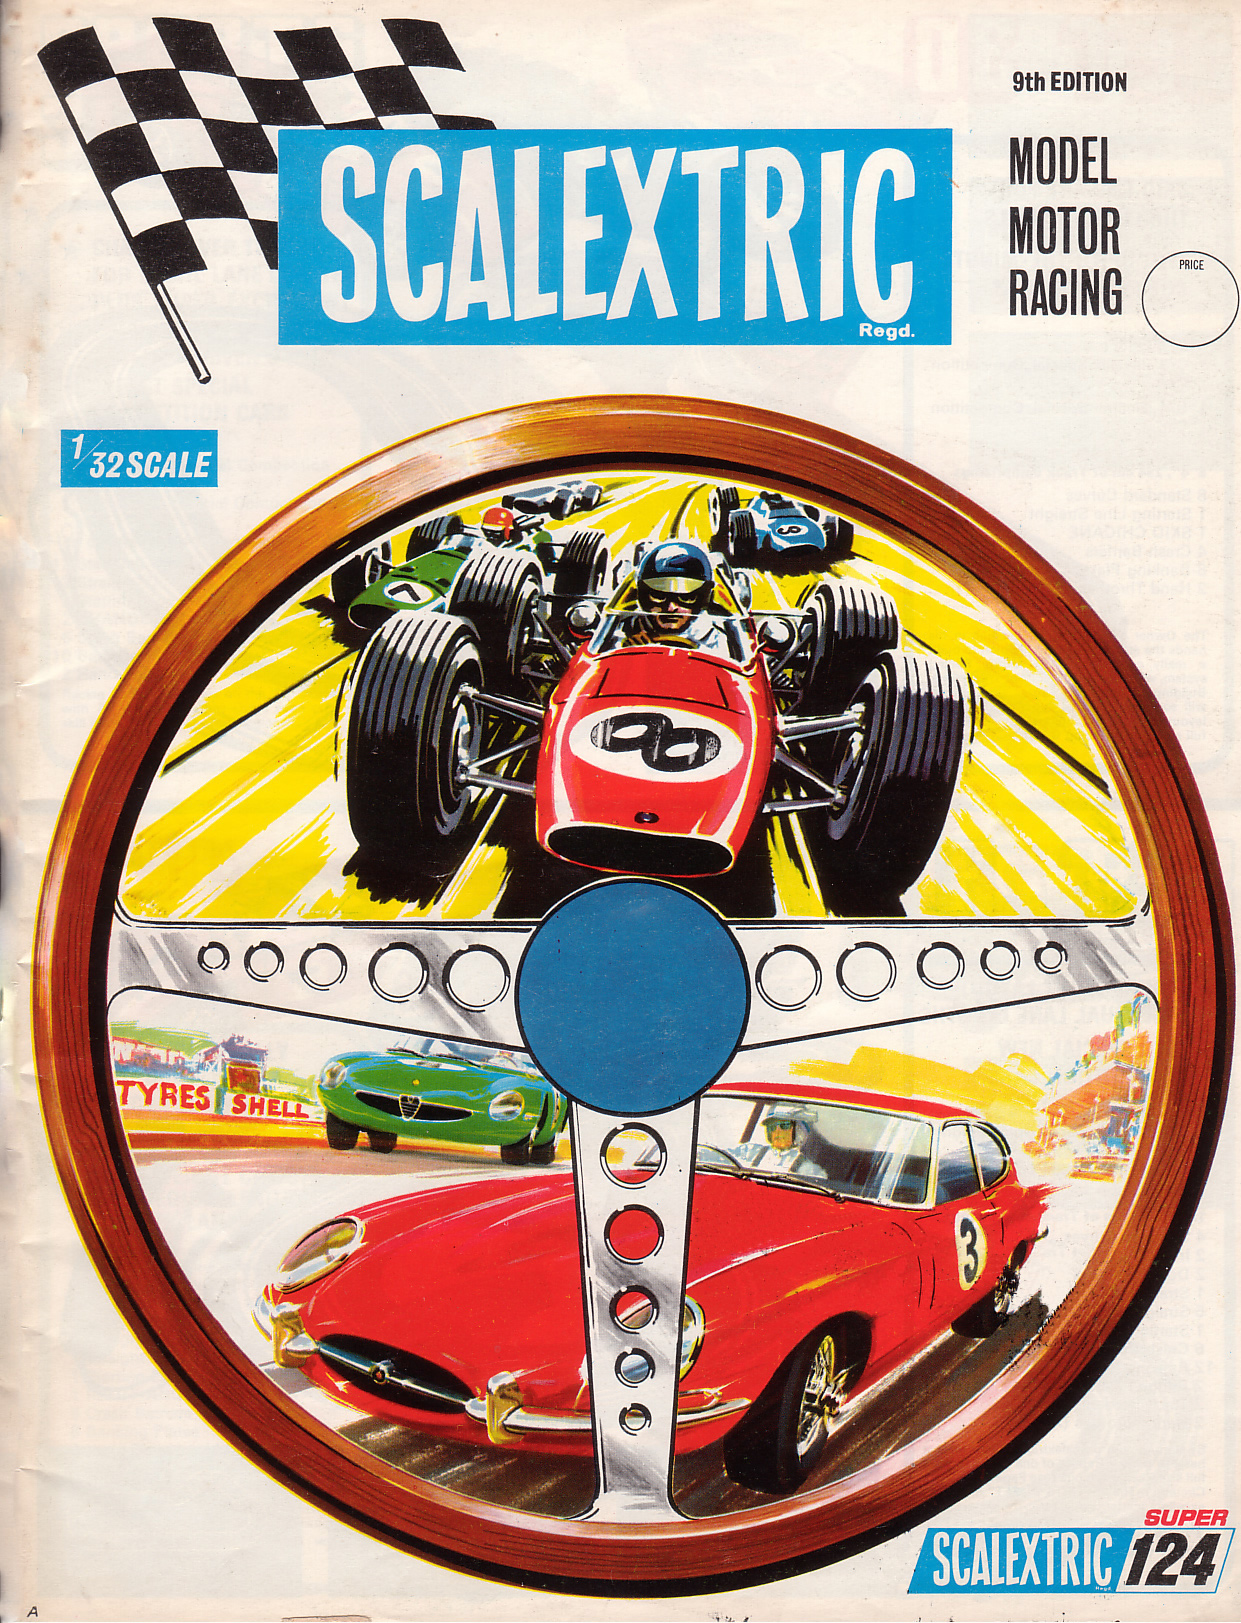 scalextric_model_motor_racing_catalog_brochures_and_catalogs_09a901d3-a8ec-4f03-92e0-322c697dbce3.jpg